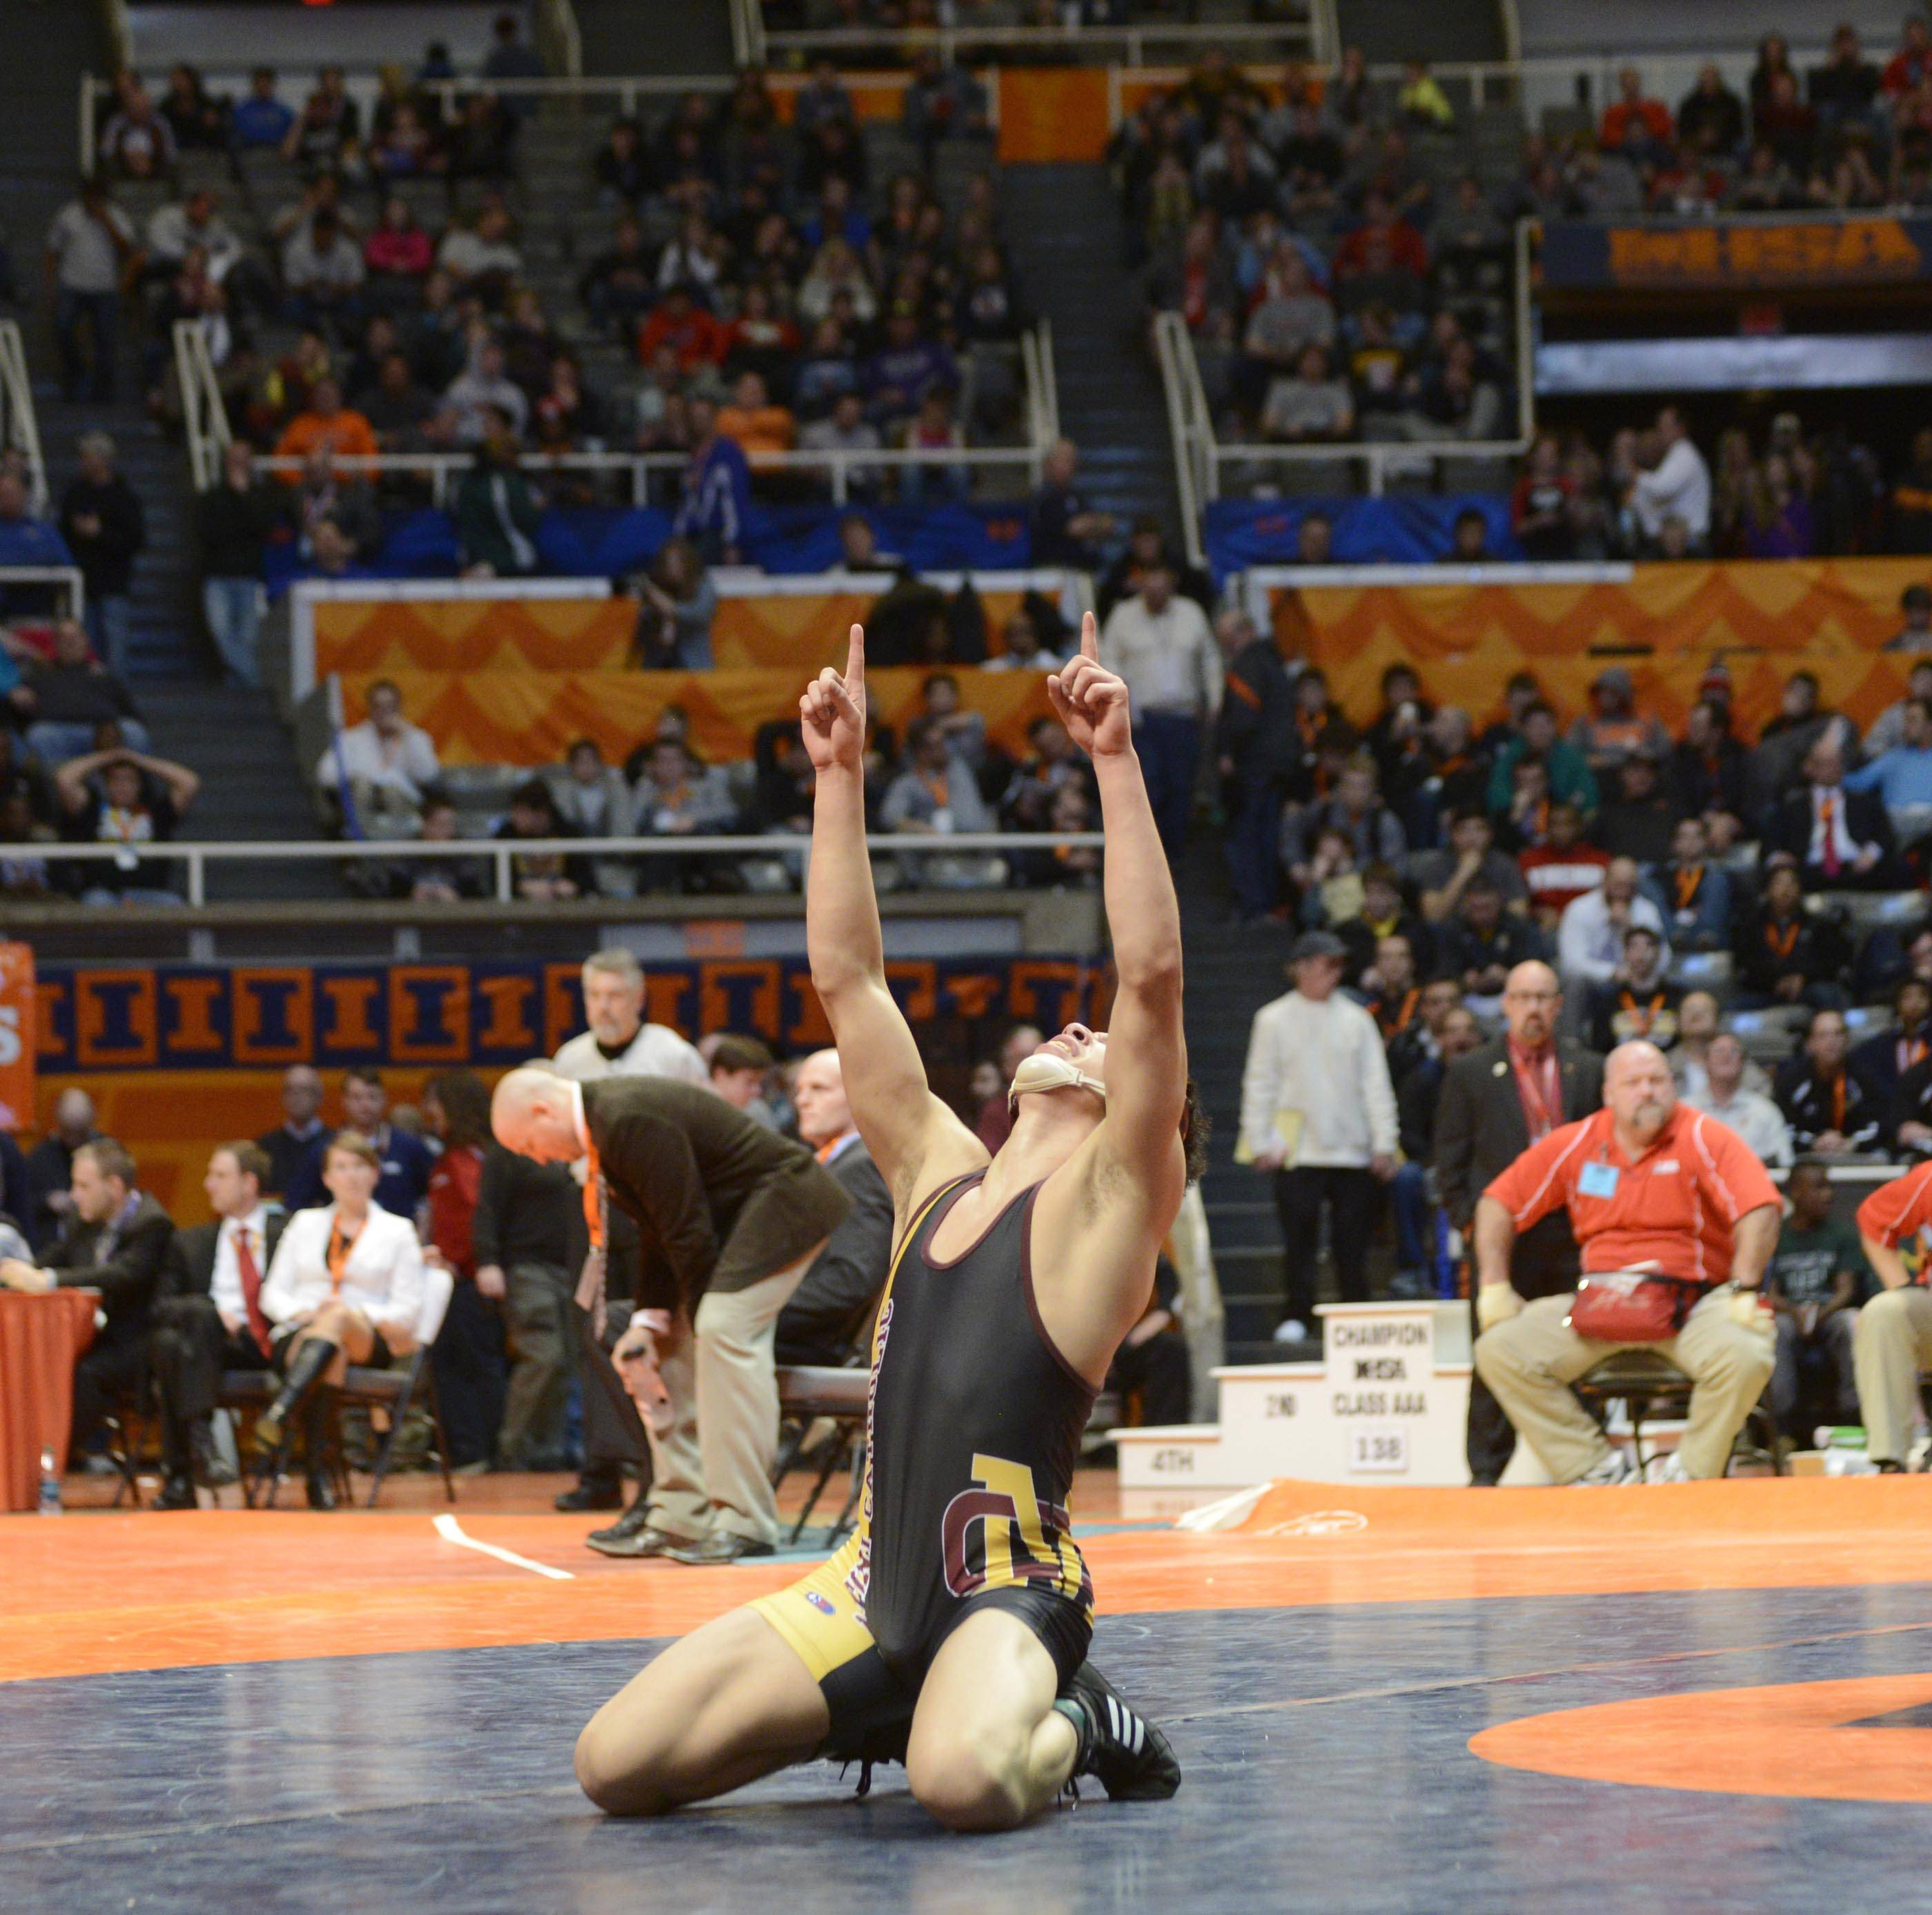 Chris Garcia of Lombard Montini Catholic High School falls to his knees after defeating SirRomeo Howard of East St. Louis High School Saturday in the 145-pound weight class championship match of the wrestling IHSA Class 2A state tournament at State Farm Center in Champaign.